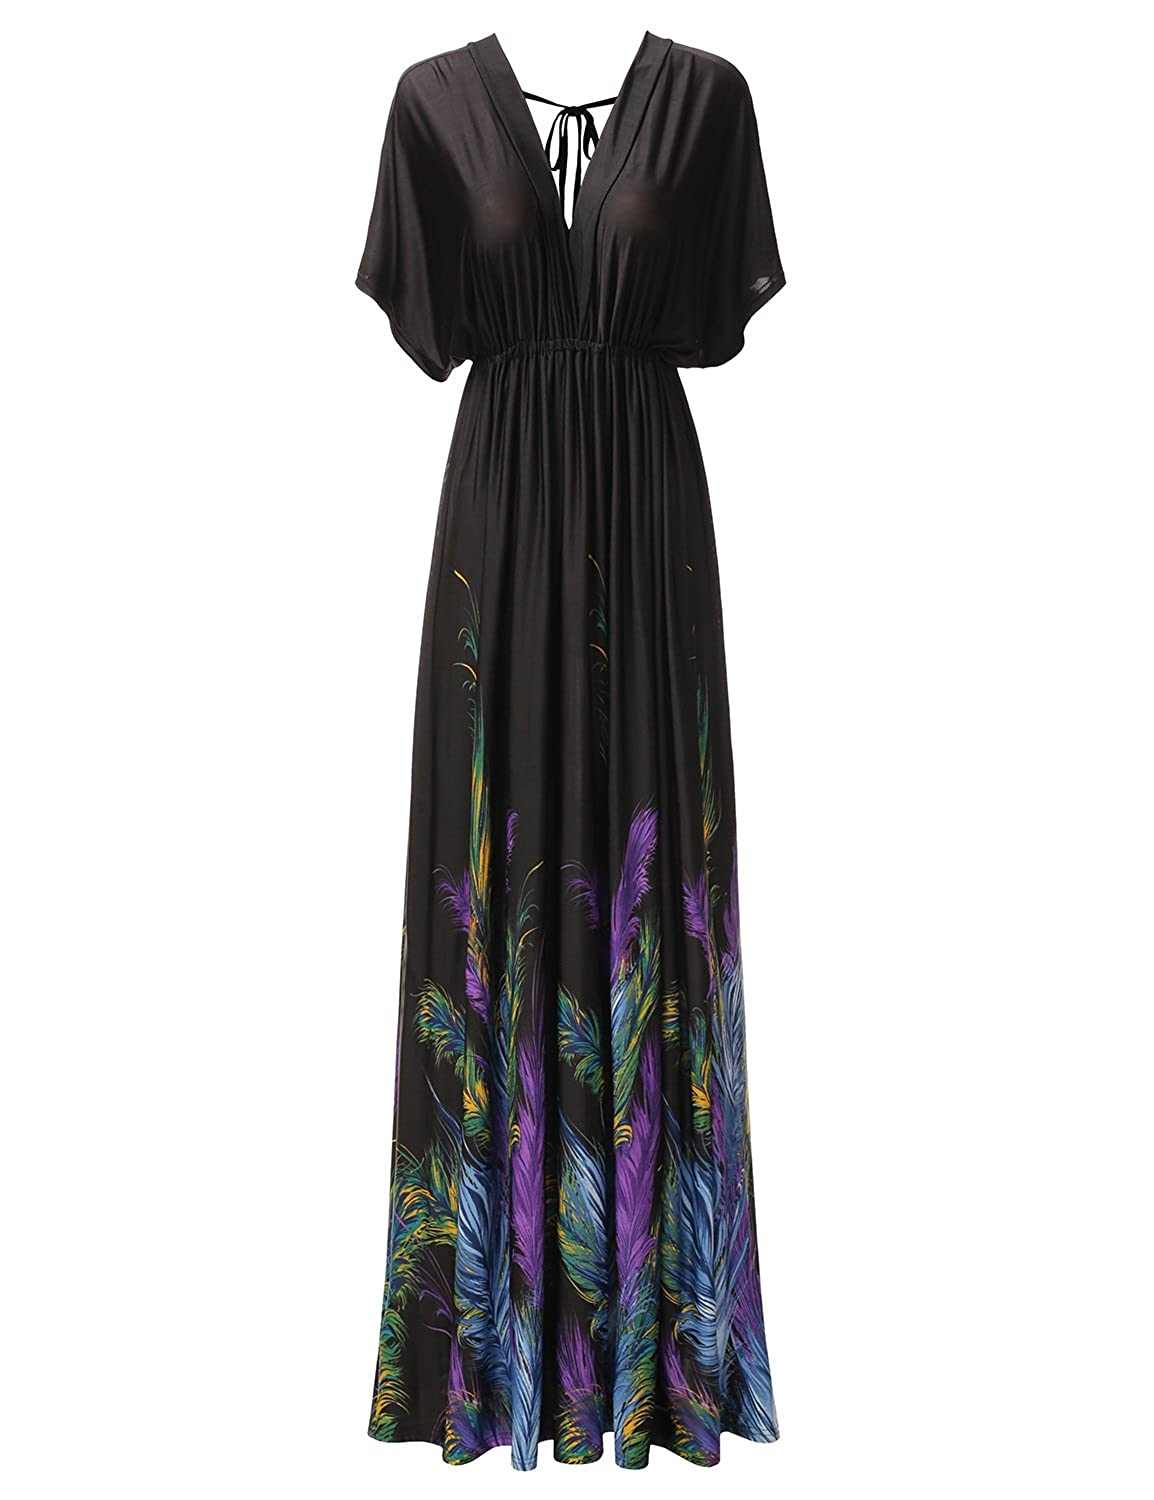 7c2d718550b Bohemian casual print maxi dress with sleeves features loose batwing sleeve  and deep v-neck cut. With plus sizes in 1XL